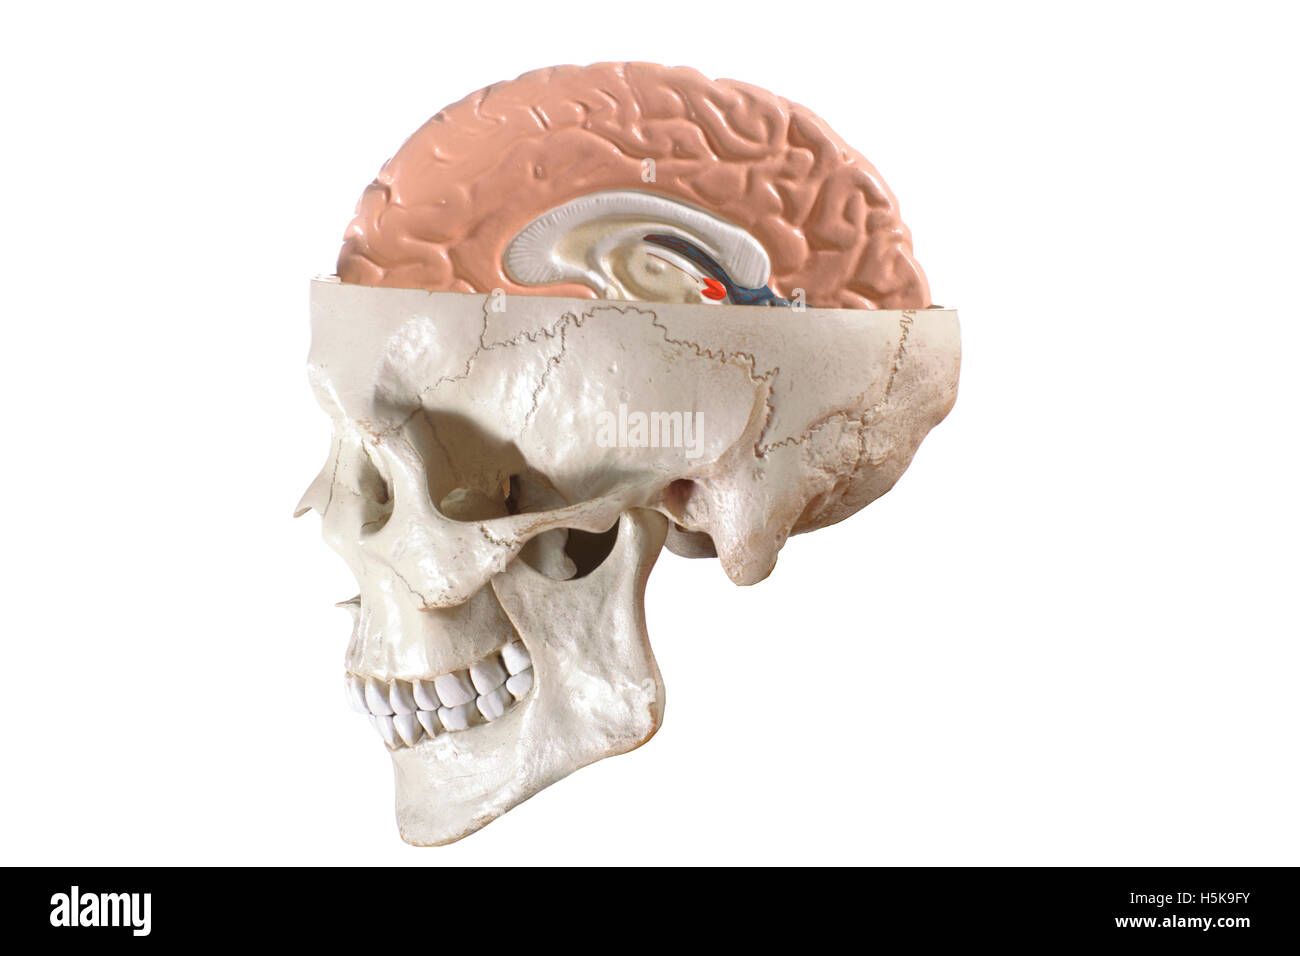 Brain Parts Stockfotos & Brain Parts Bilder - Alamy